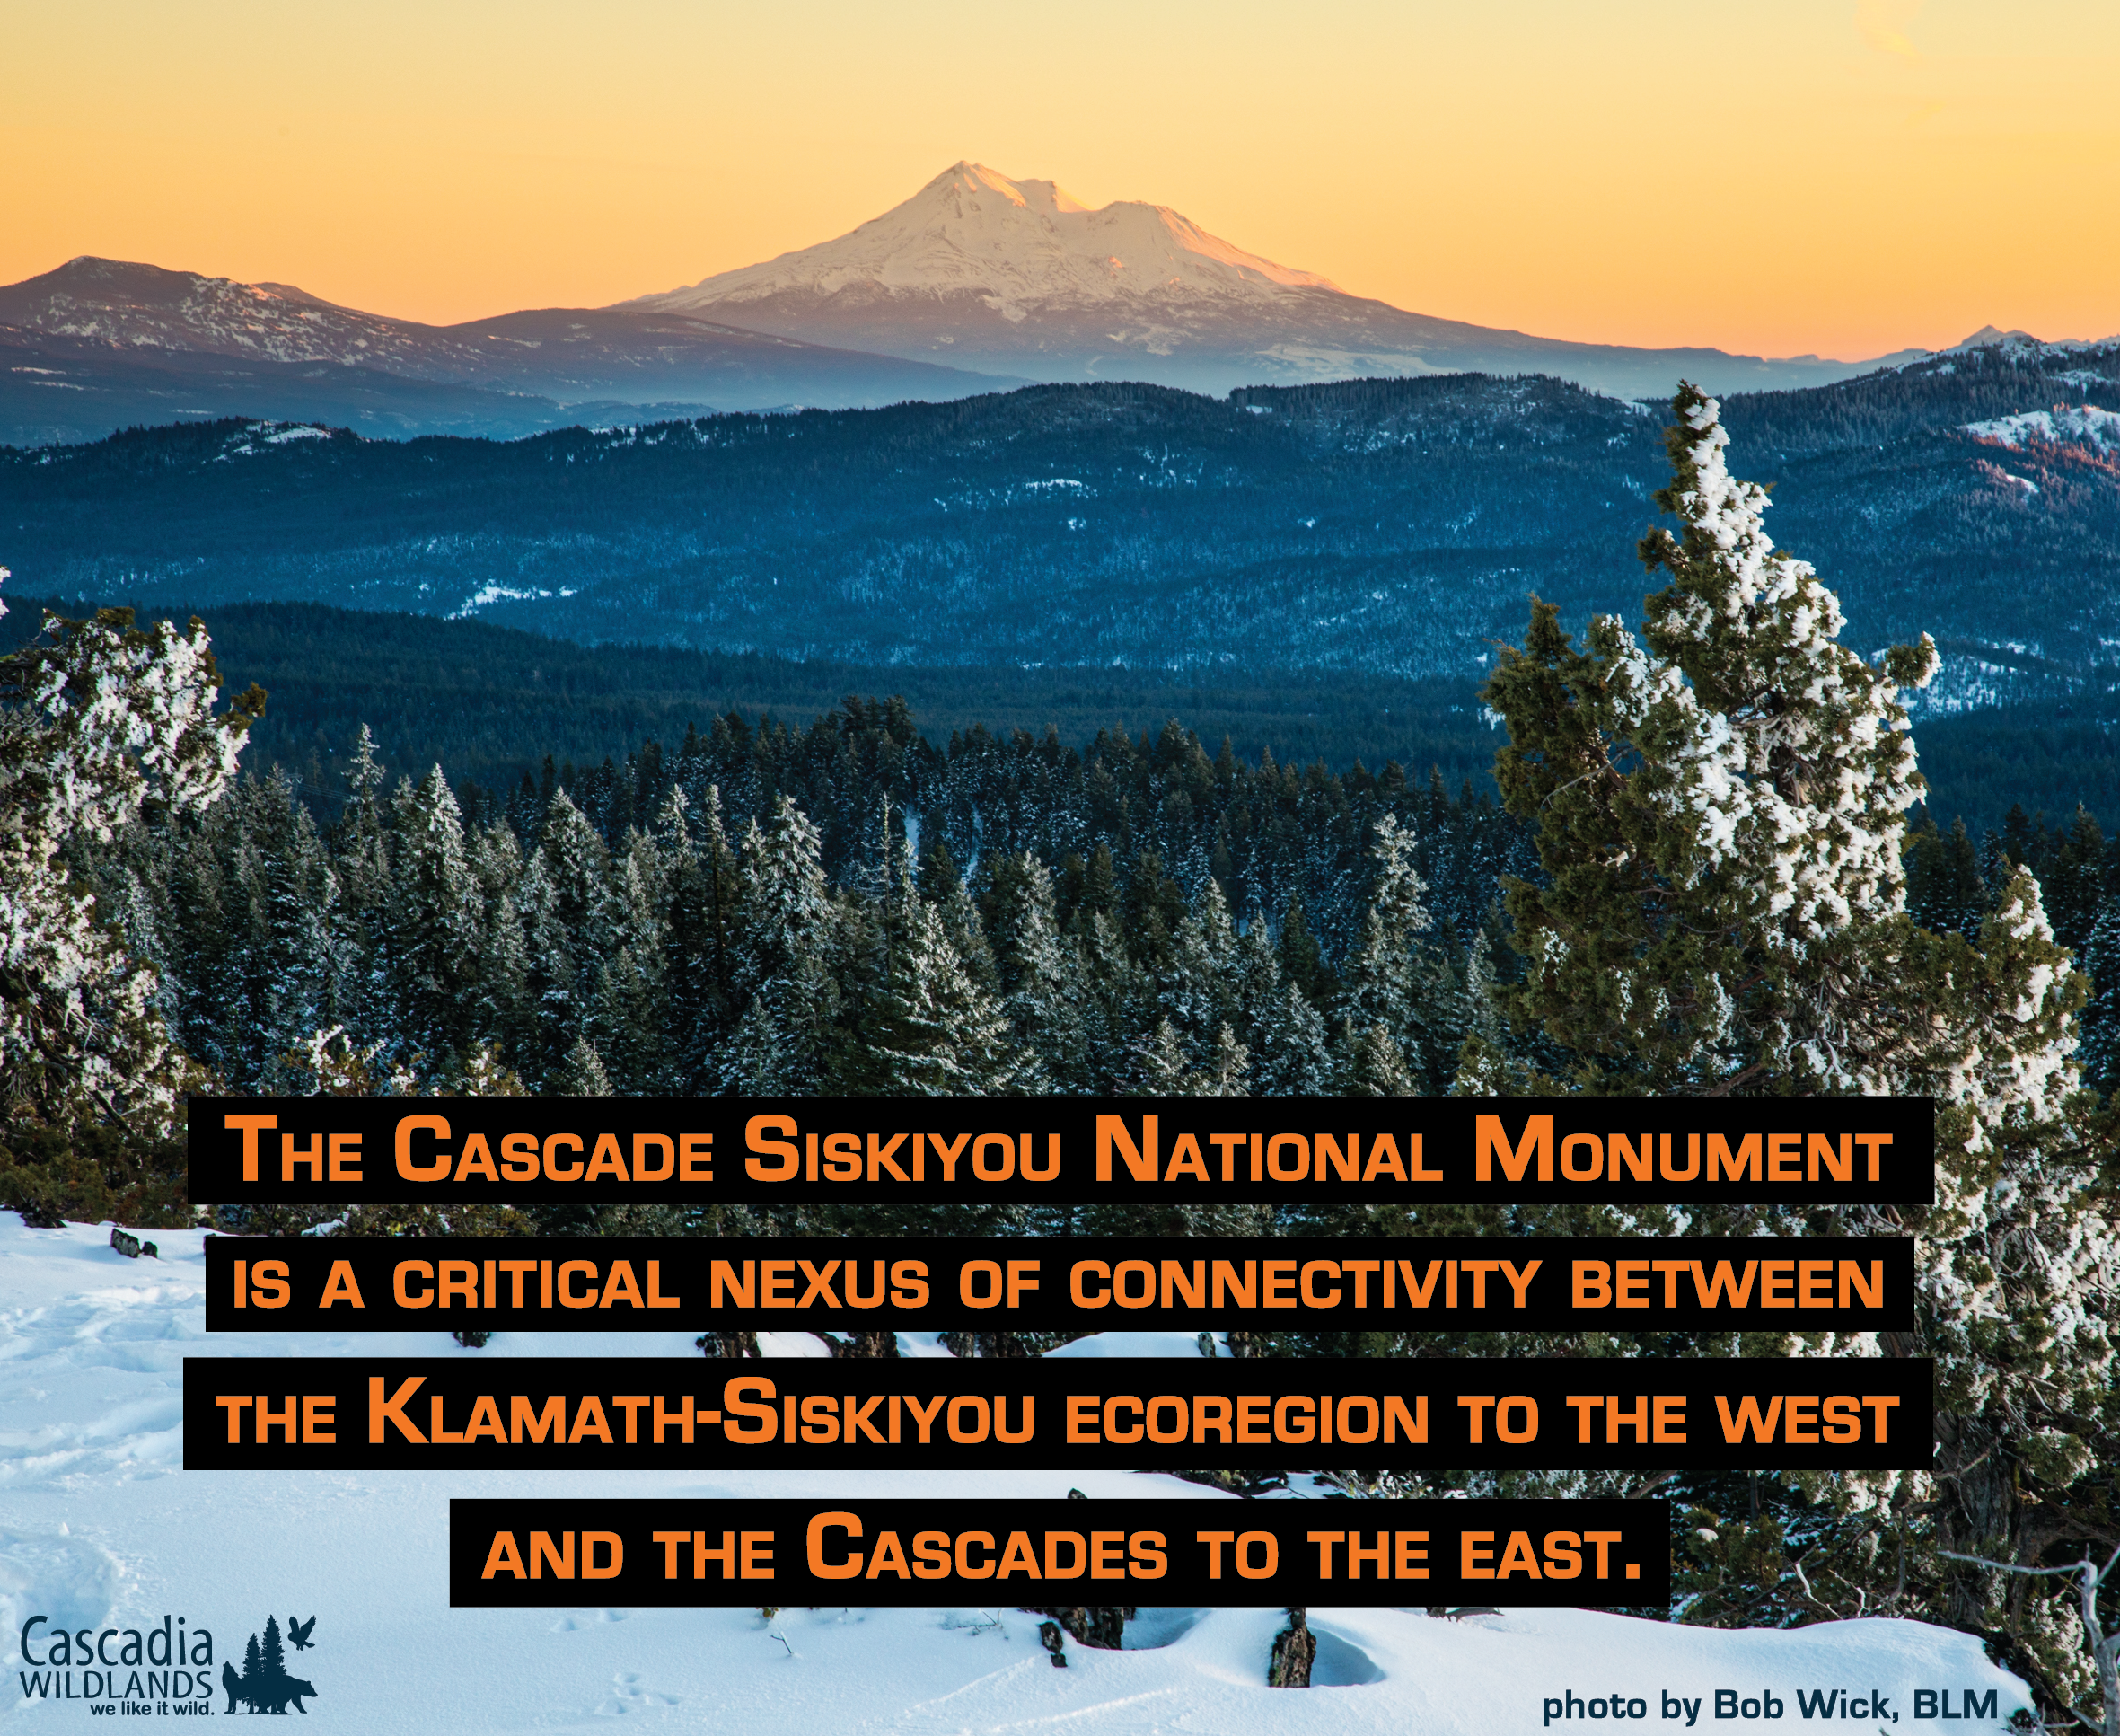 Take Action to Defend the Cascade-Siskiyou National Monument